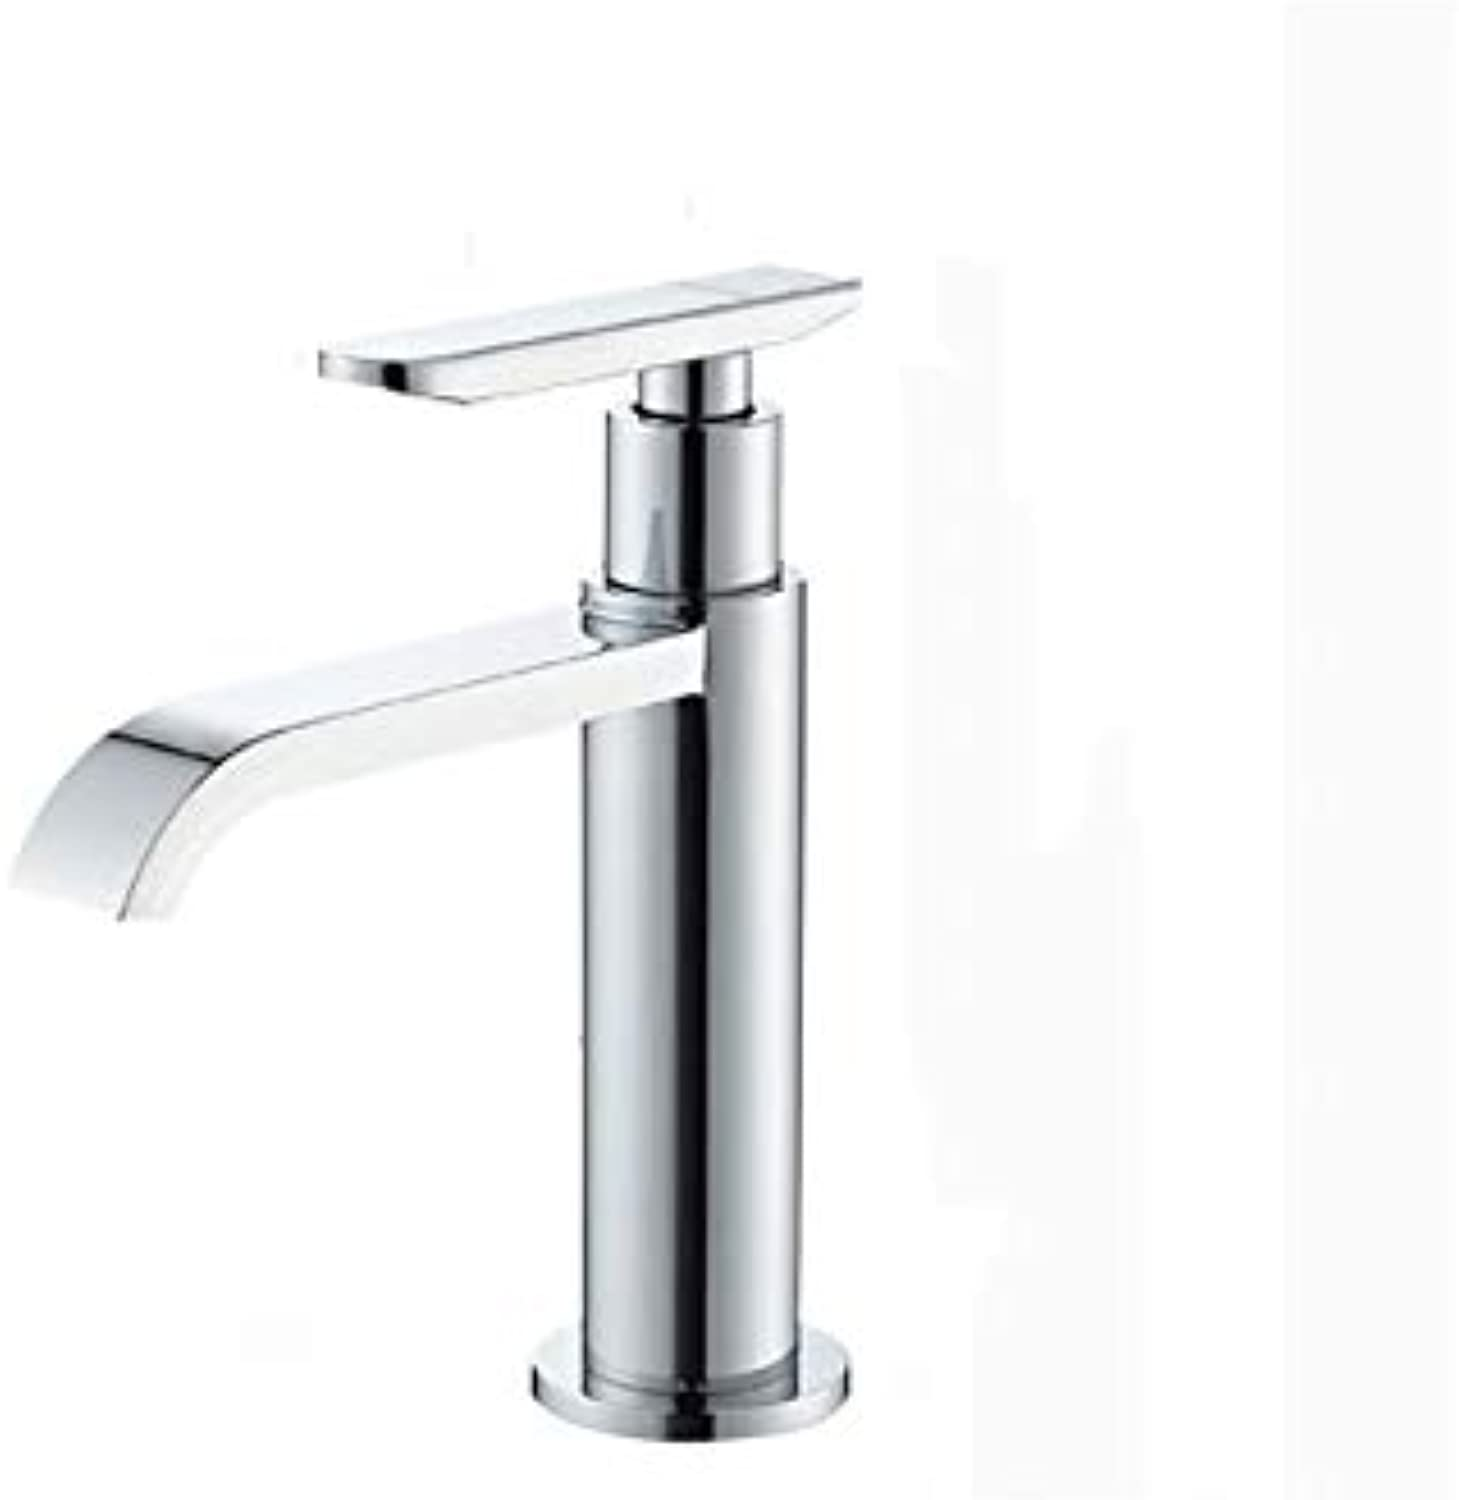 LOOZY Kitchen Bathroom Universal Faucet Copper Faucet Single Cold Tap Washbasin Mixer Single Hole redating Faucet